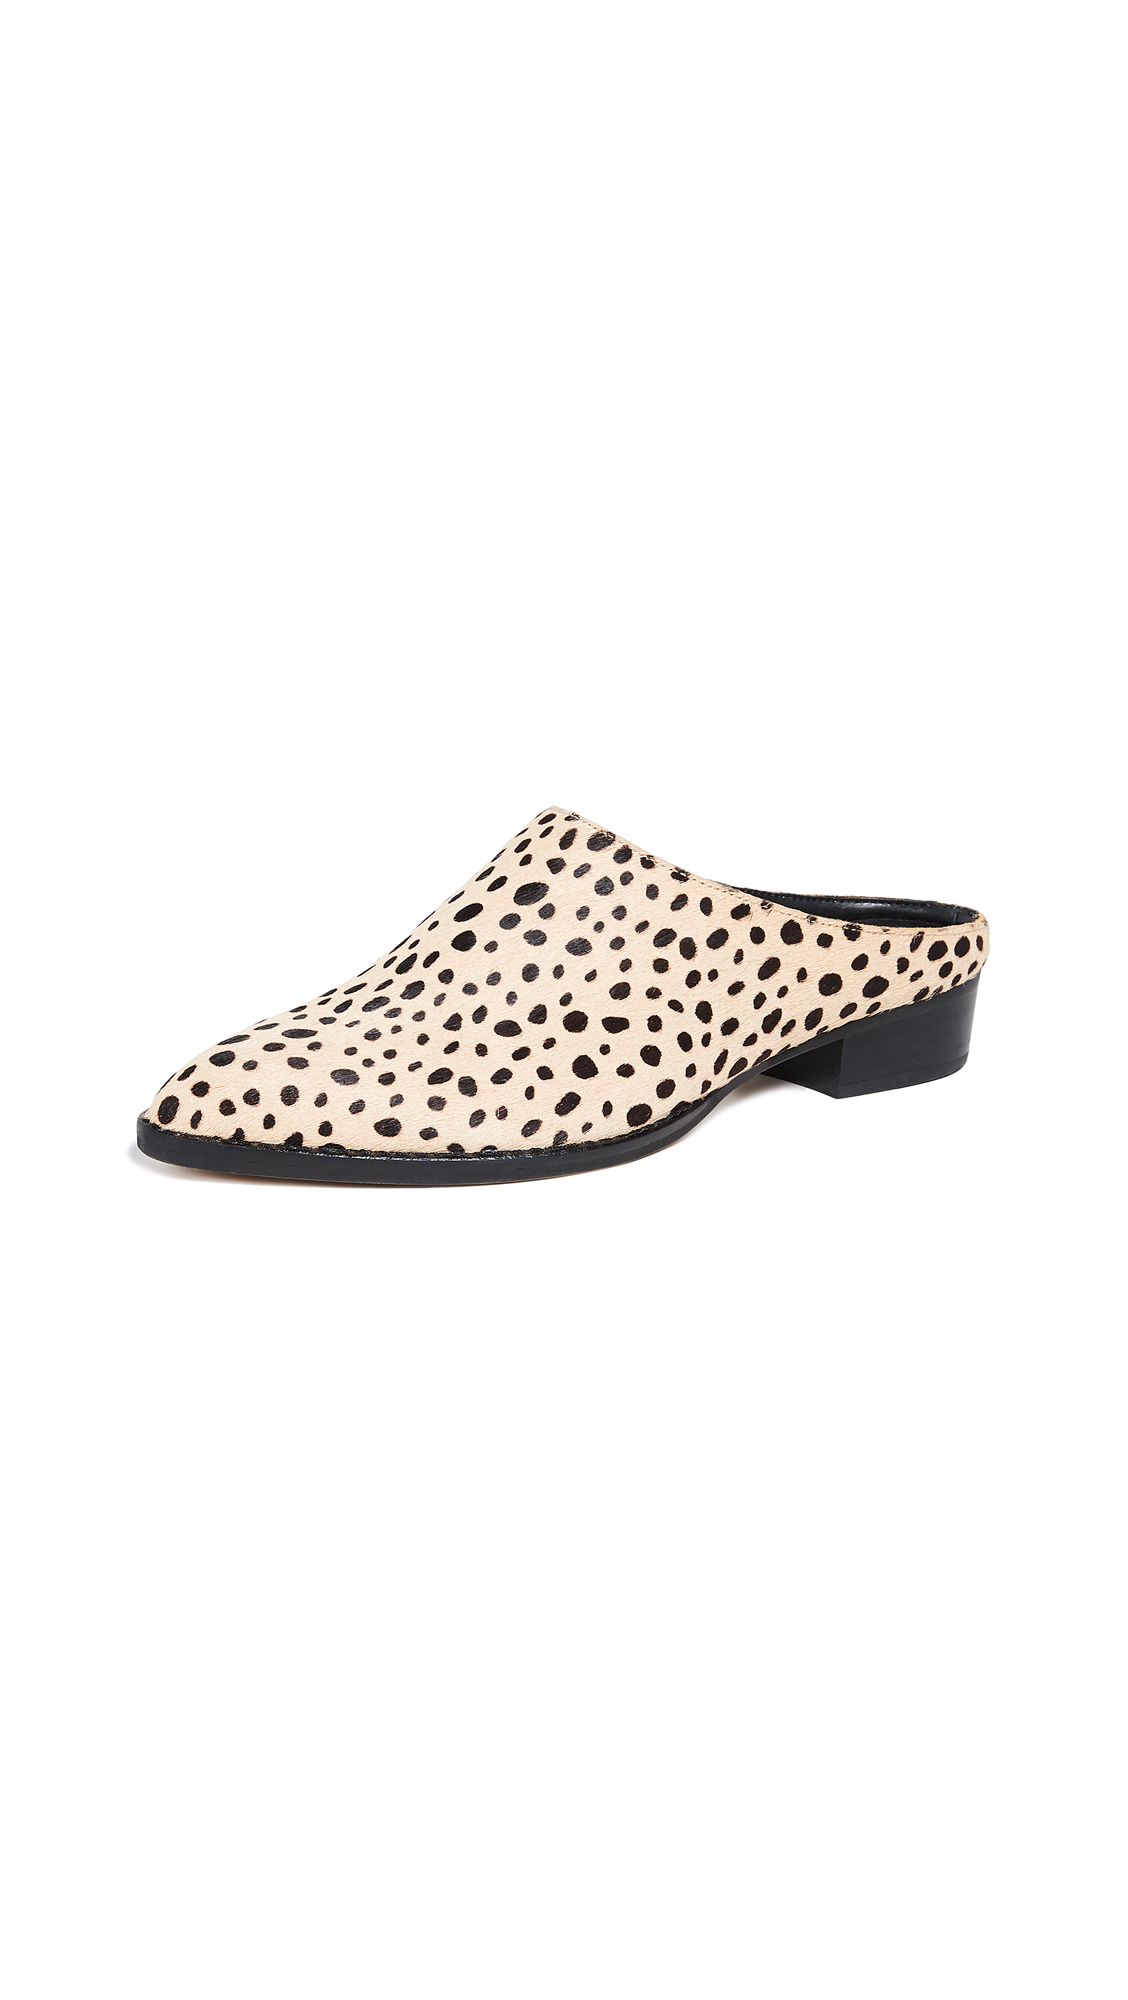 Dolce Vita Aven Point Toe Mules - Leopard